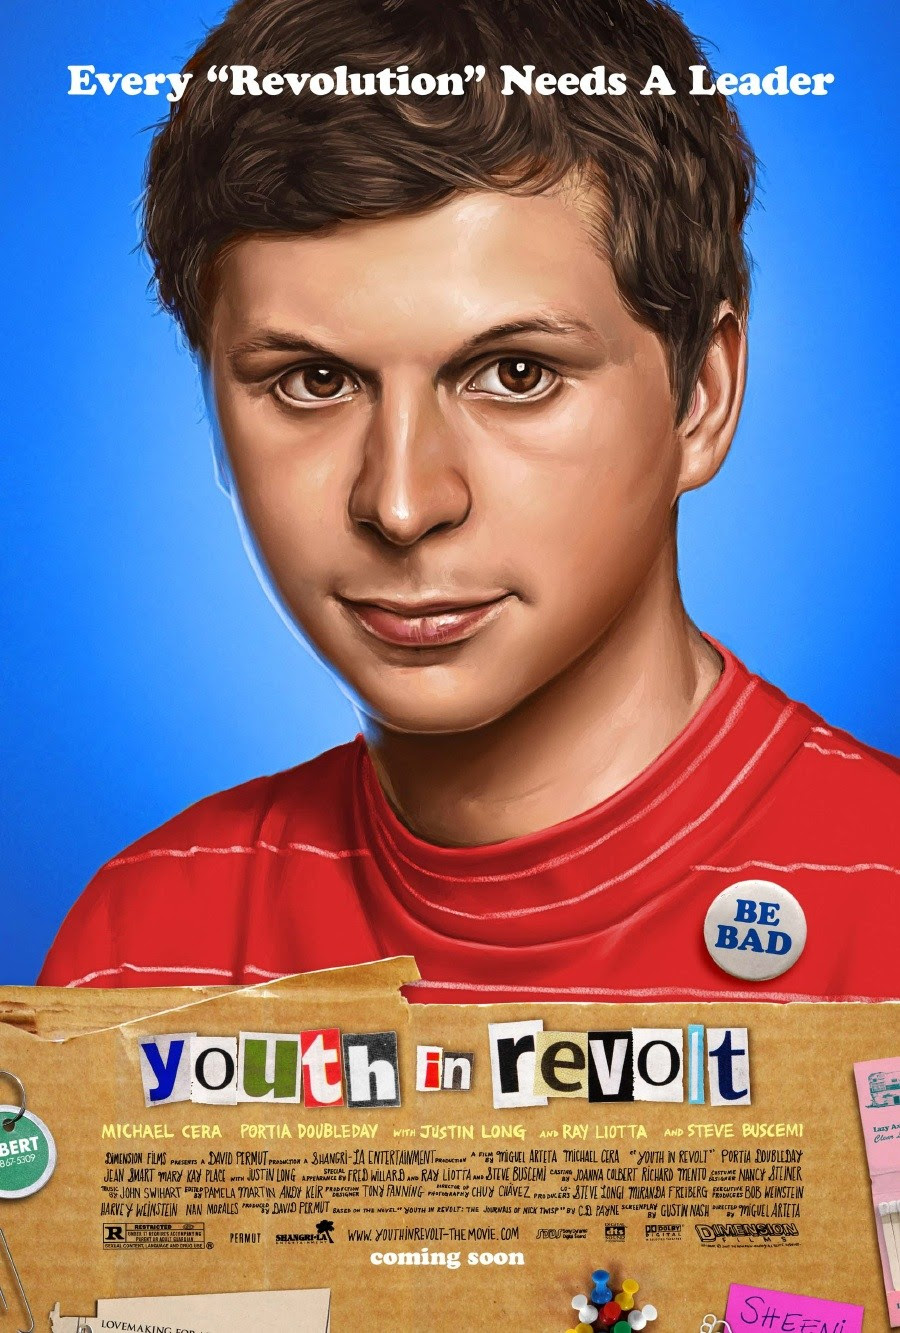 YOUTH IN REVOLT - teaser poster [click to enlarge]